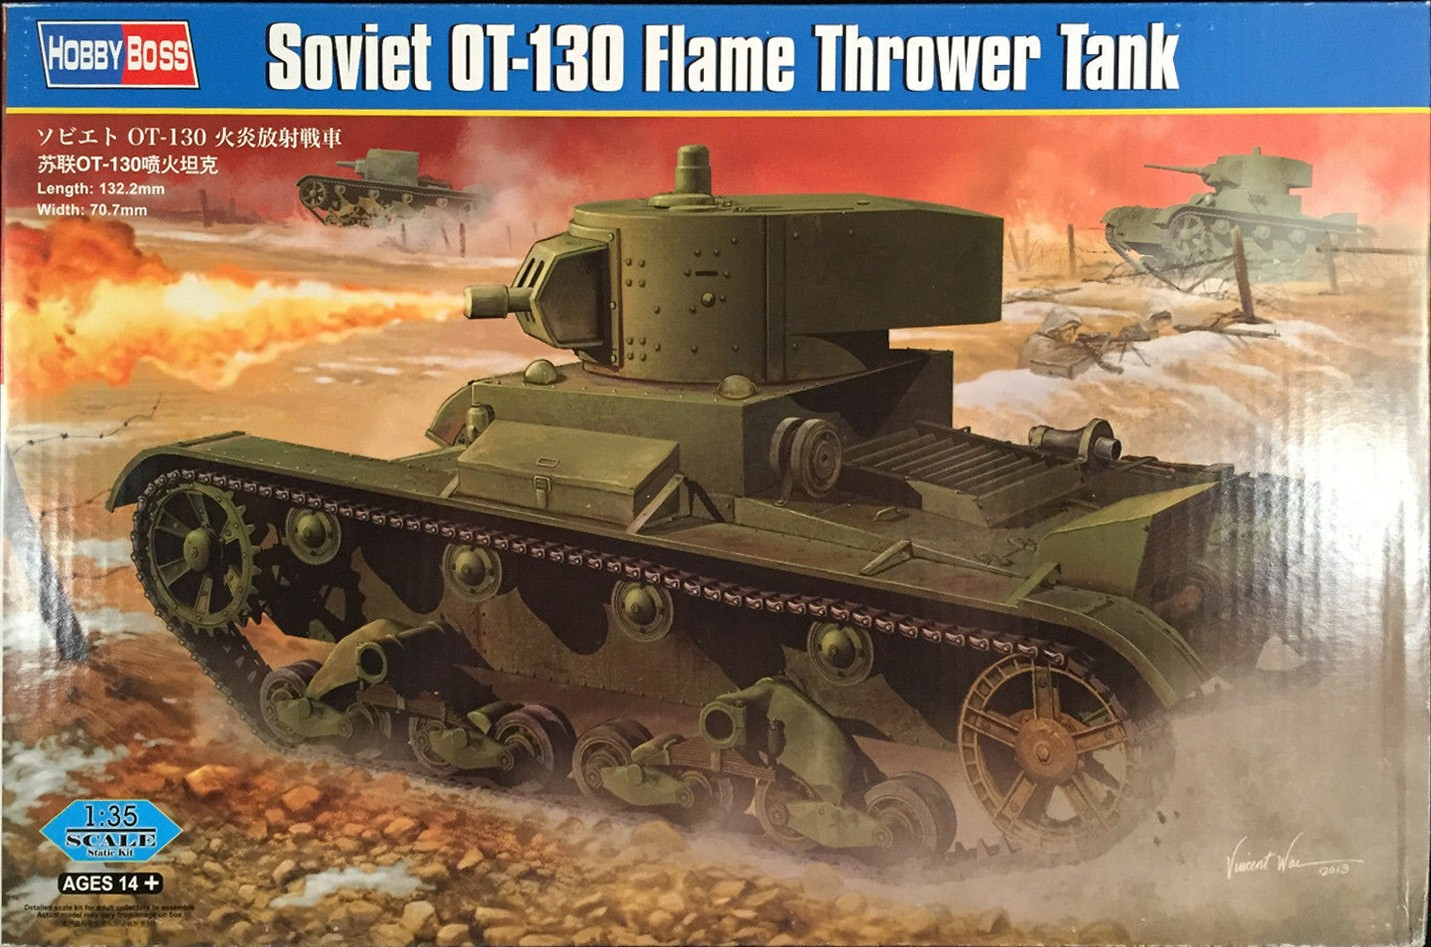 82498 Soviet OT-130 Flame Thrower Tank Image